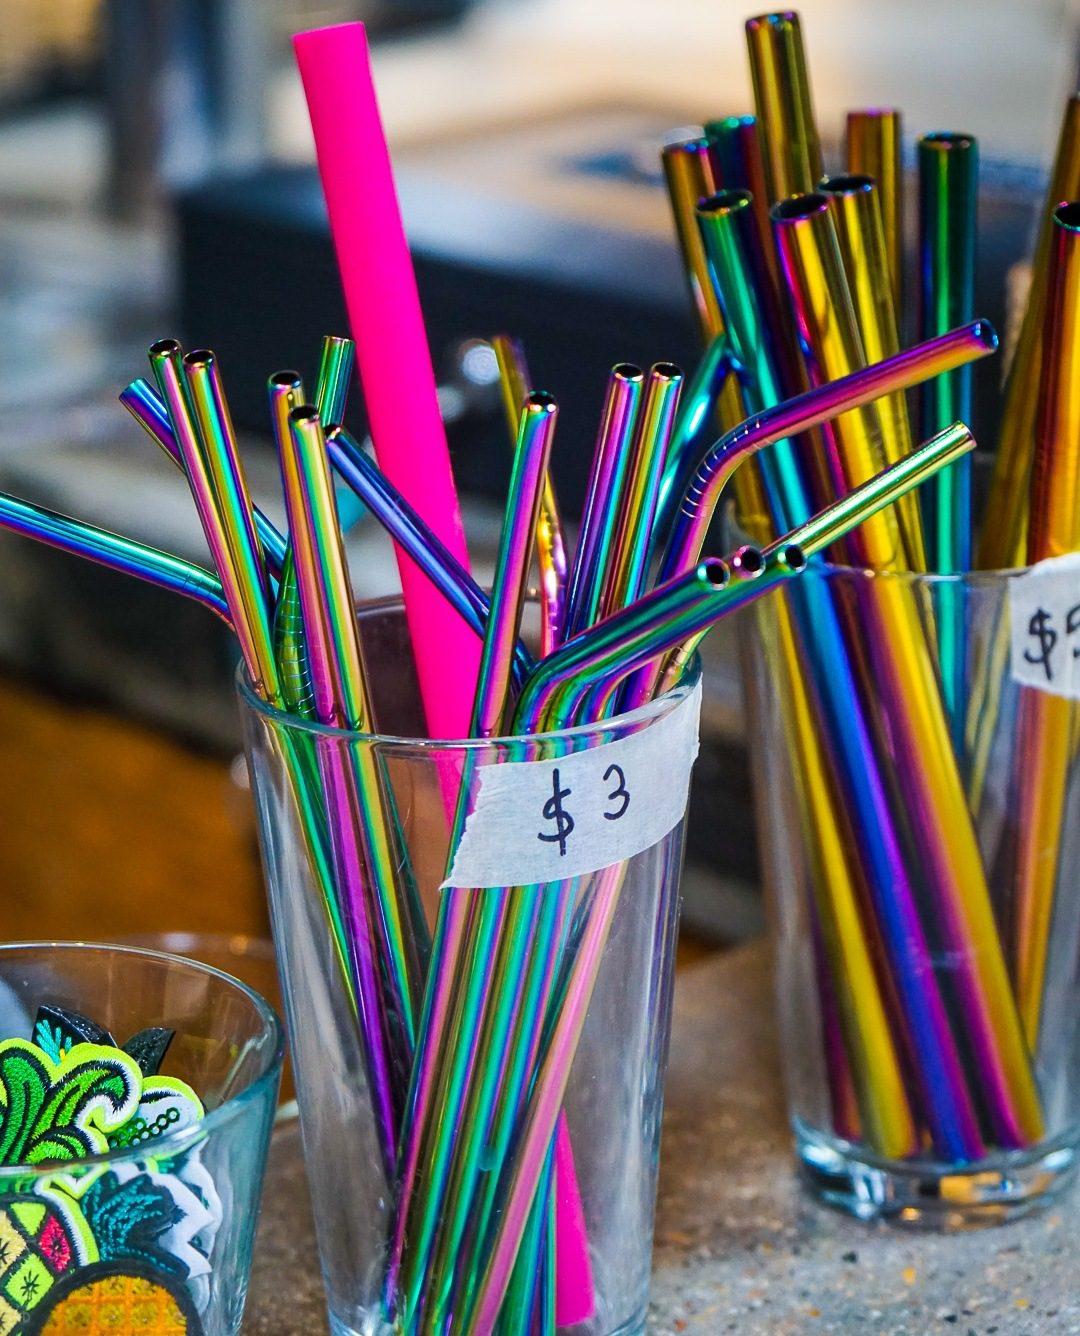 Central Square in Cambridge, MA has some of the best mural arts and local food in the Boston area, including Graffiti Alley! See tips from a tour that focuses on unique small businesses! Pictured: Rainbow metal straws at Abide.